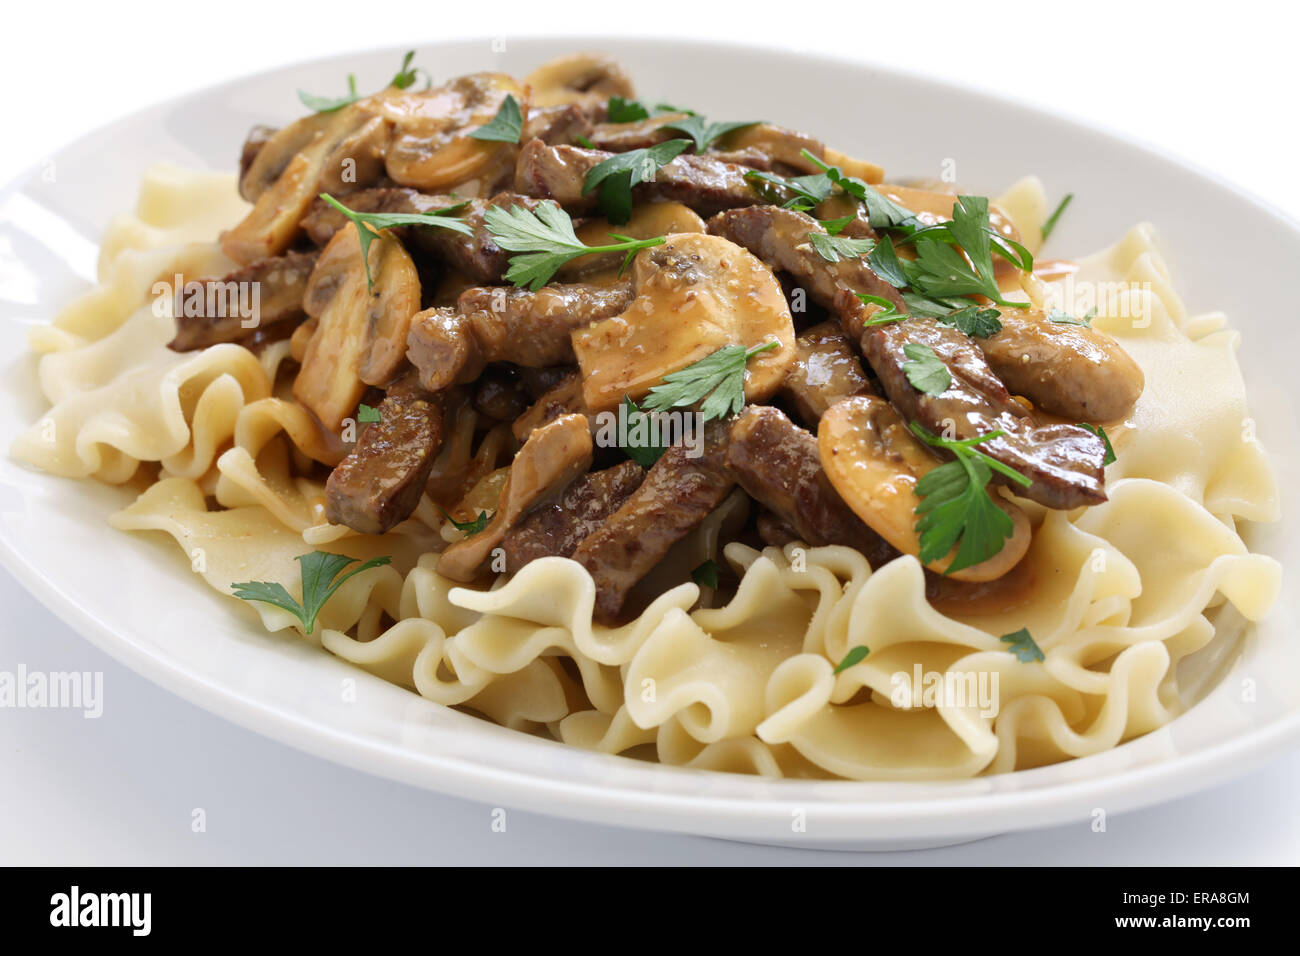 beef stroganoff with pasta, russian cuisine isolated on white background - Stock Image